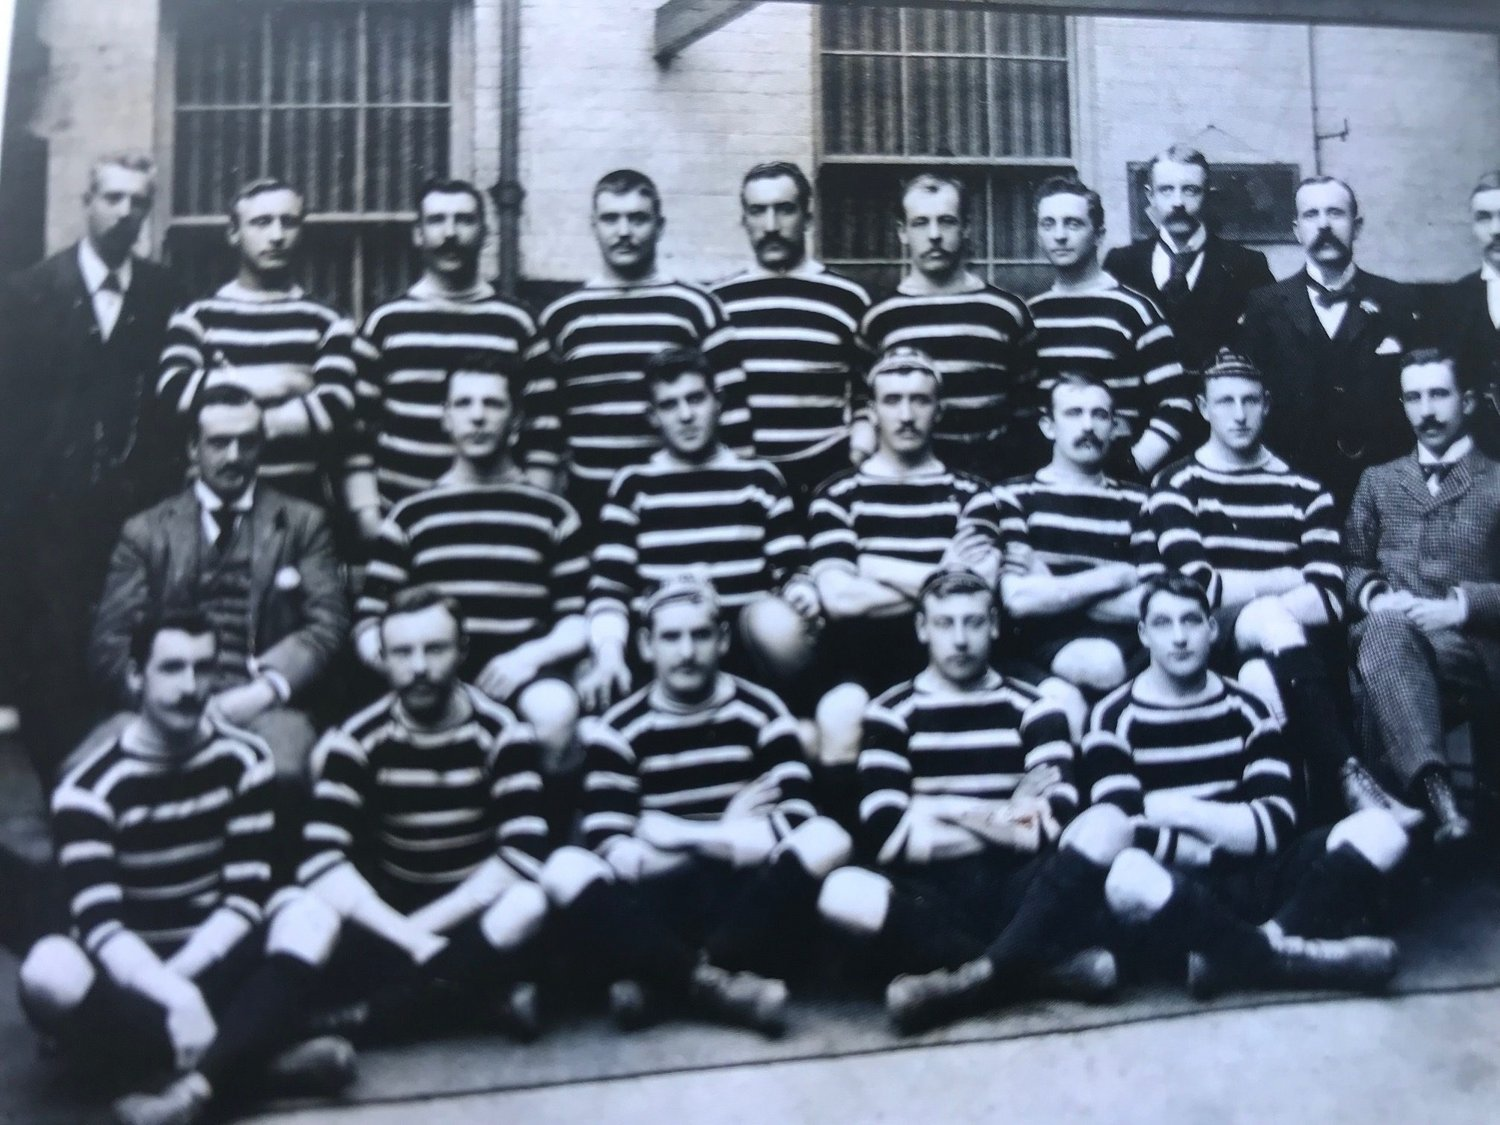 Leicester Tigers 1895/96 team - the first to face Northampton at Welford Road